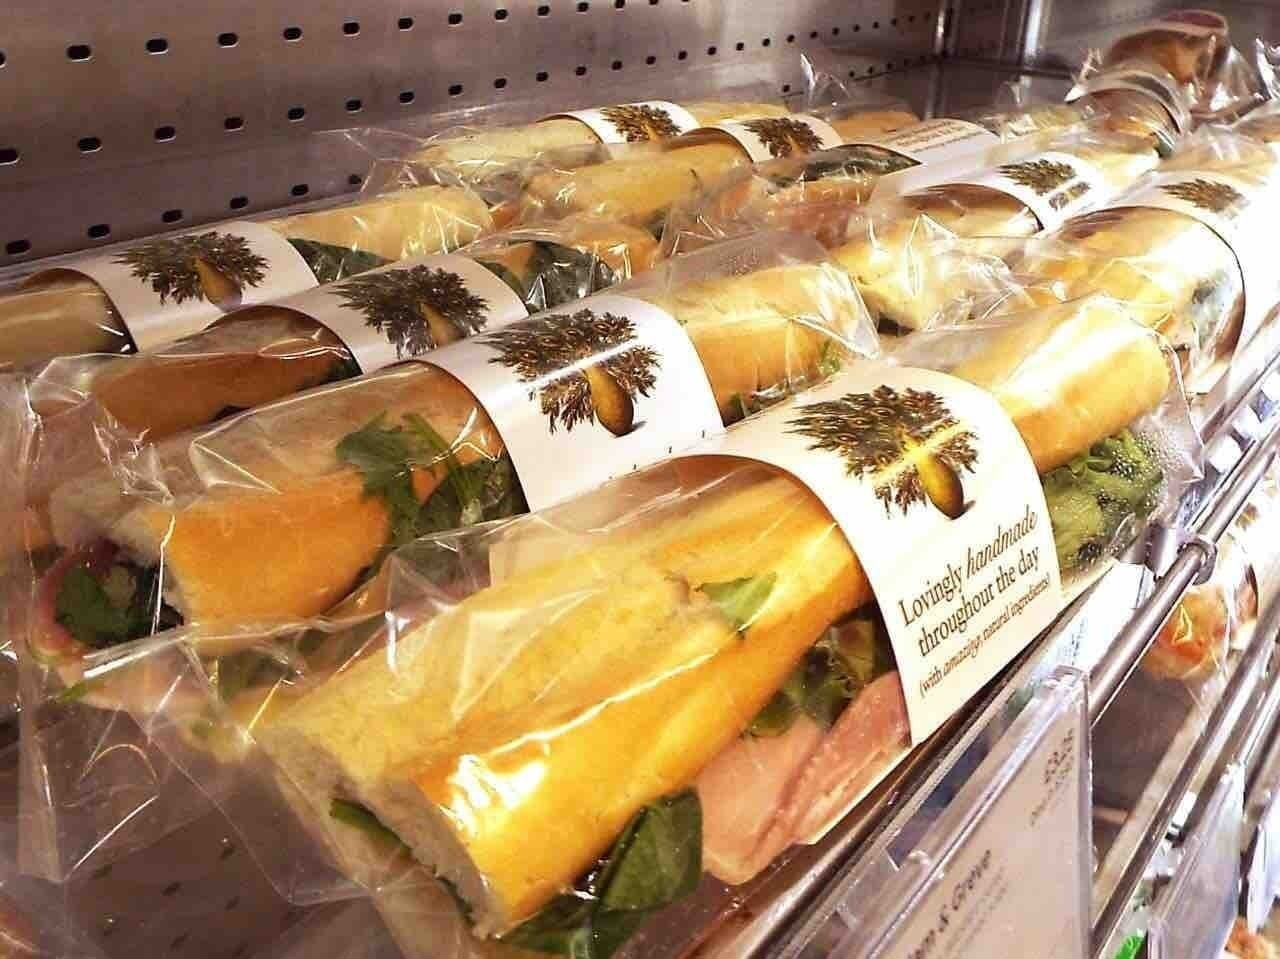 Pret a Manger Food: Baguettes, Sandwiches, and other savoury